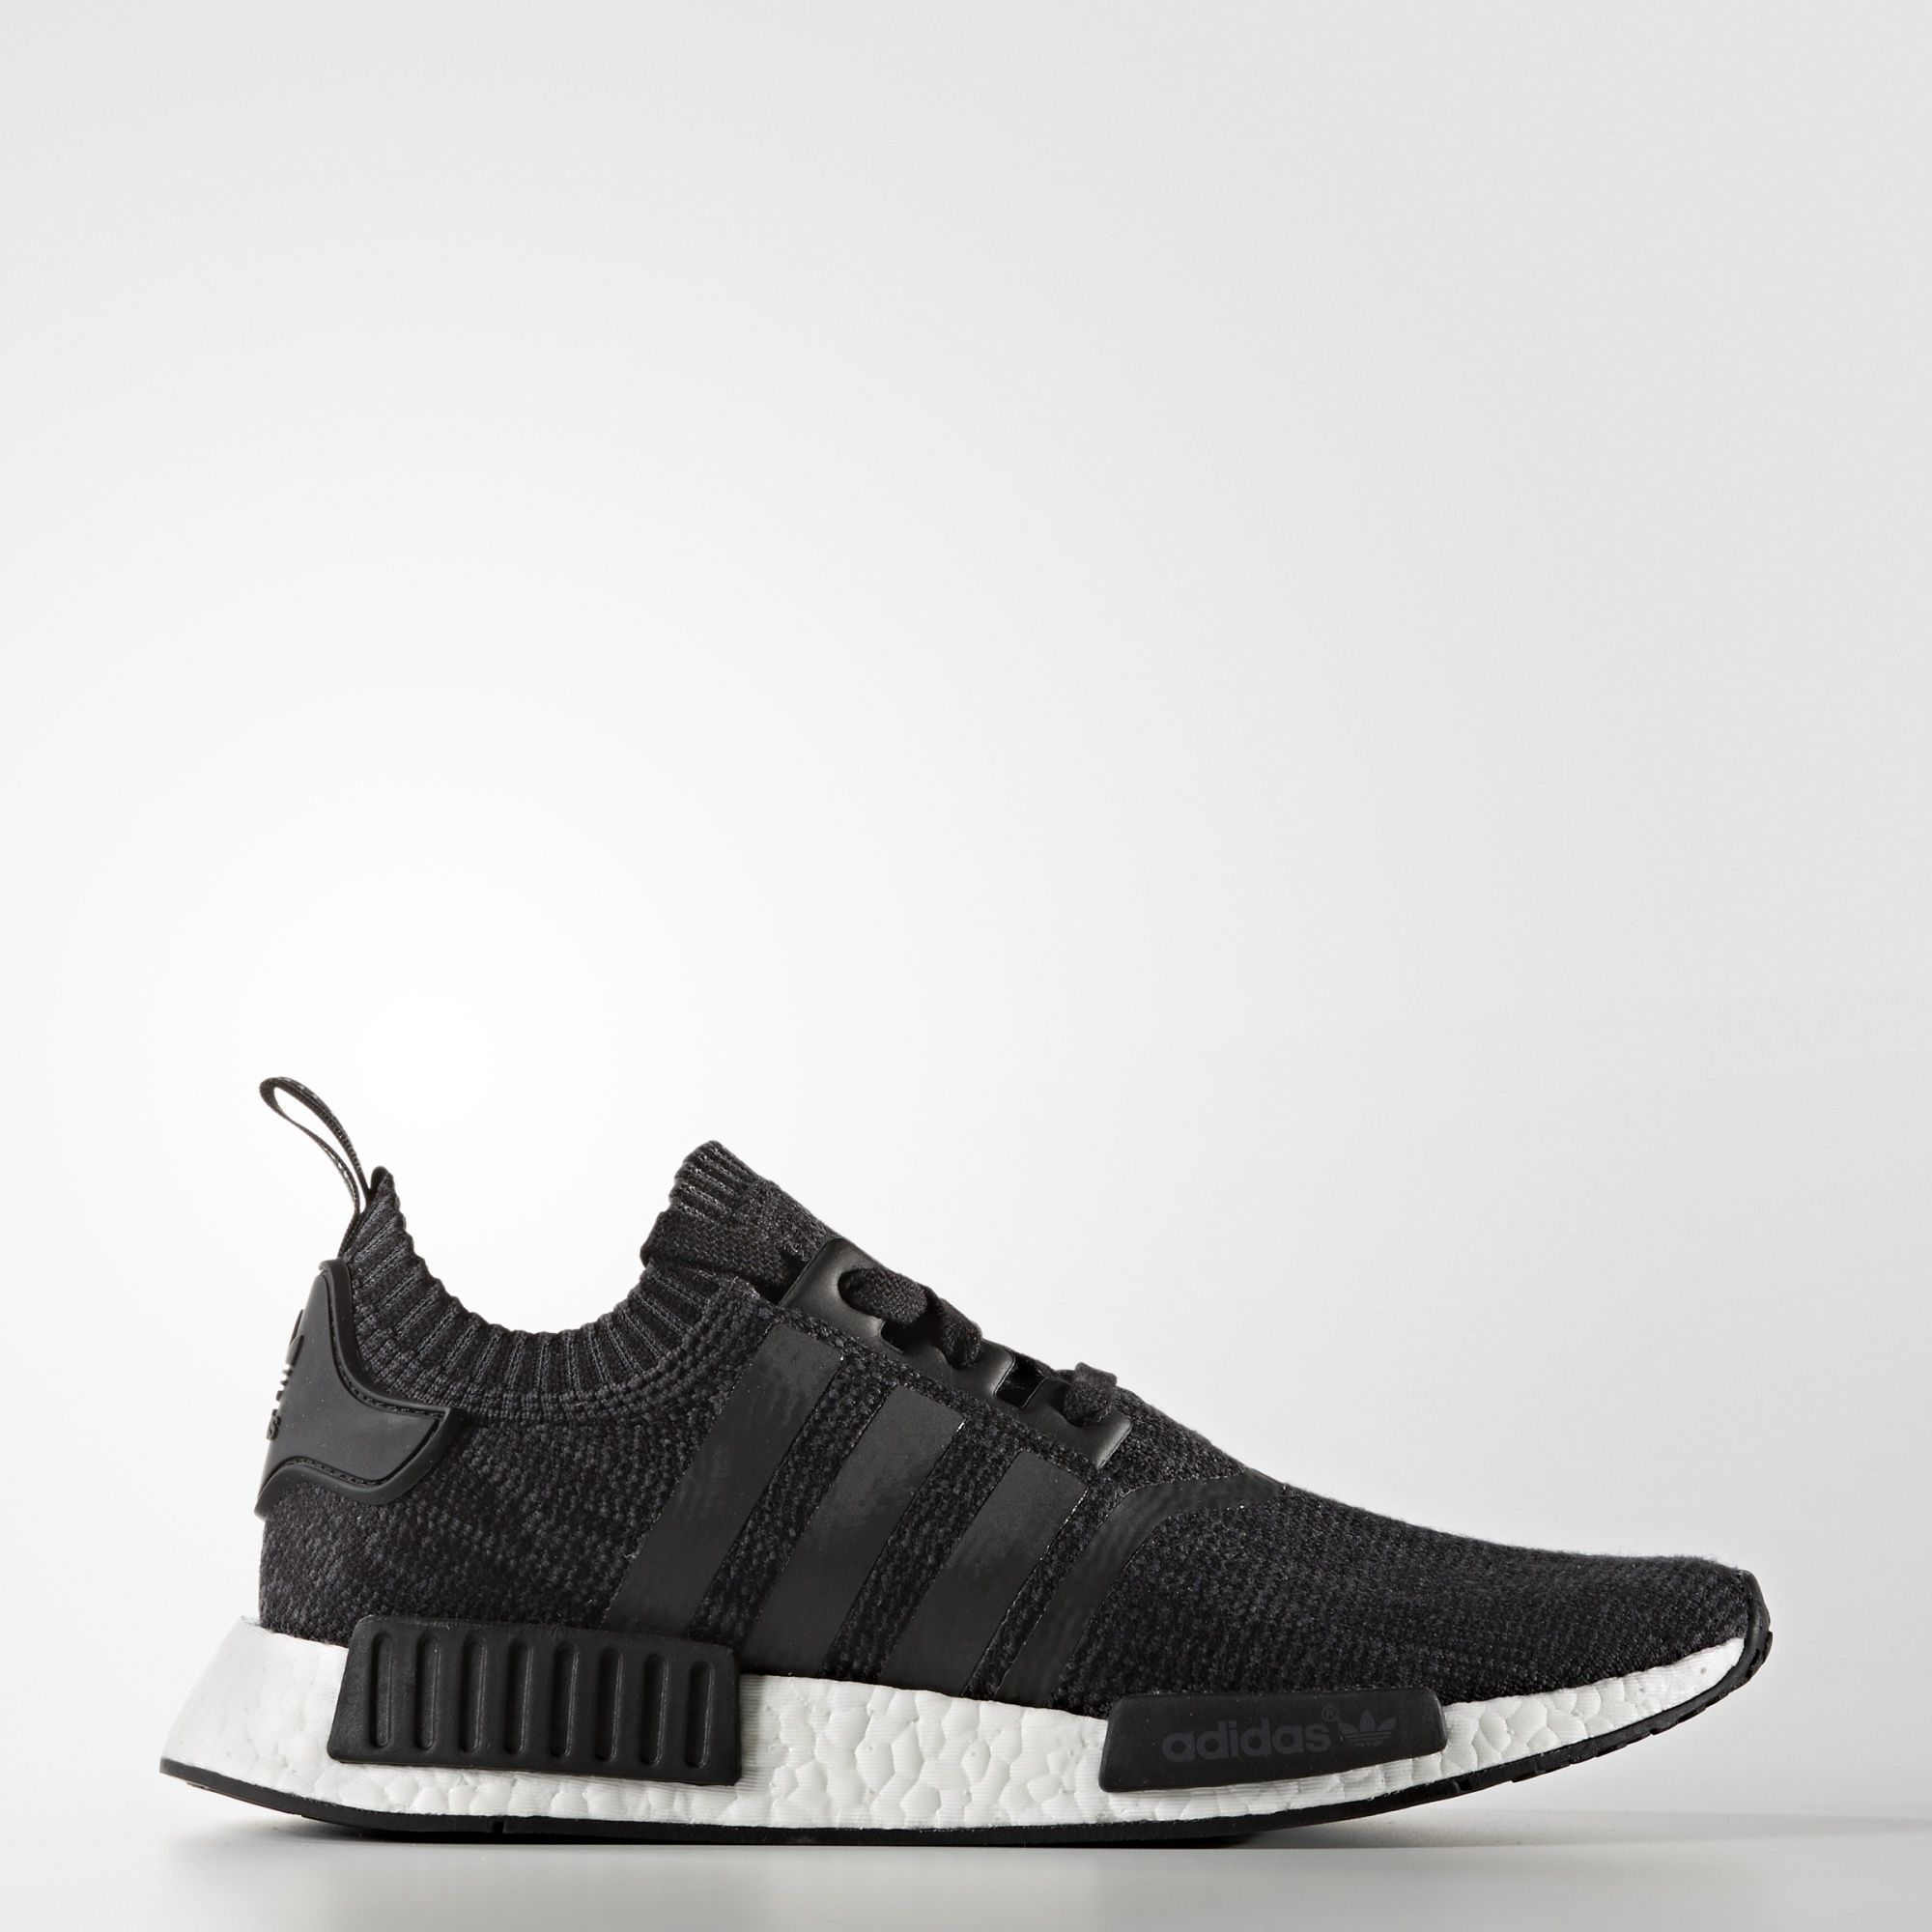 adidas - NMD_R1 Primeknit Shoes